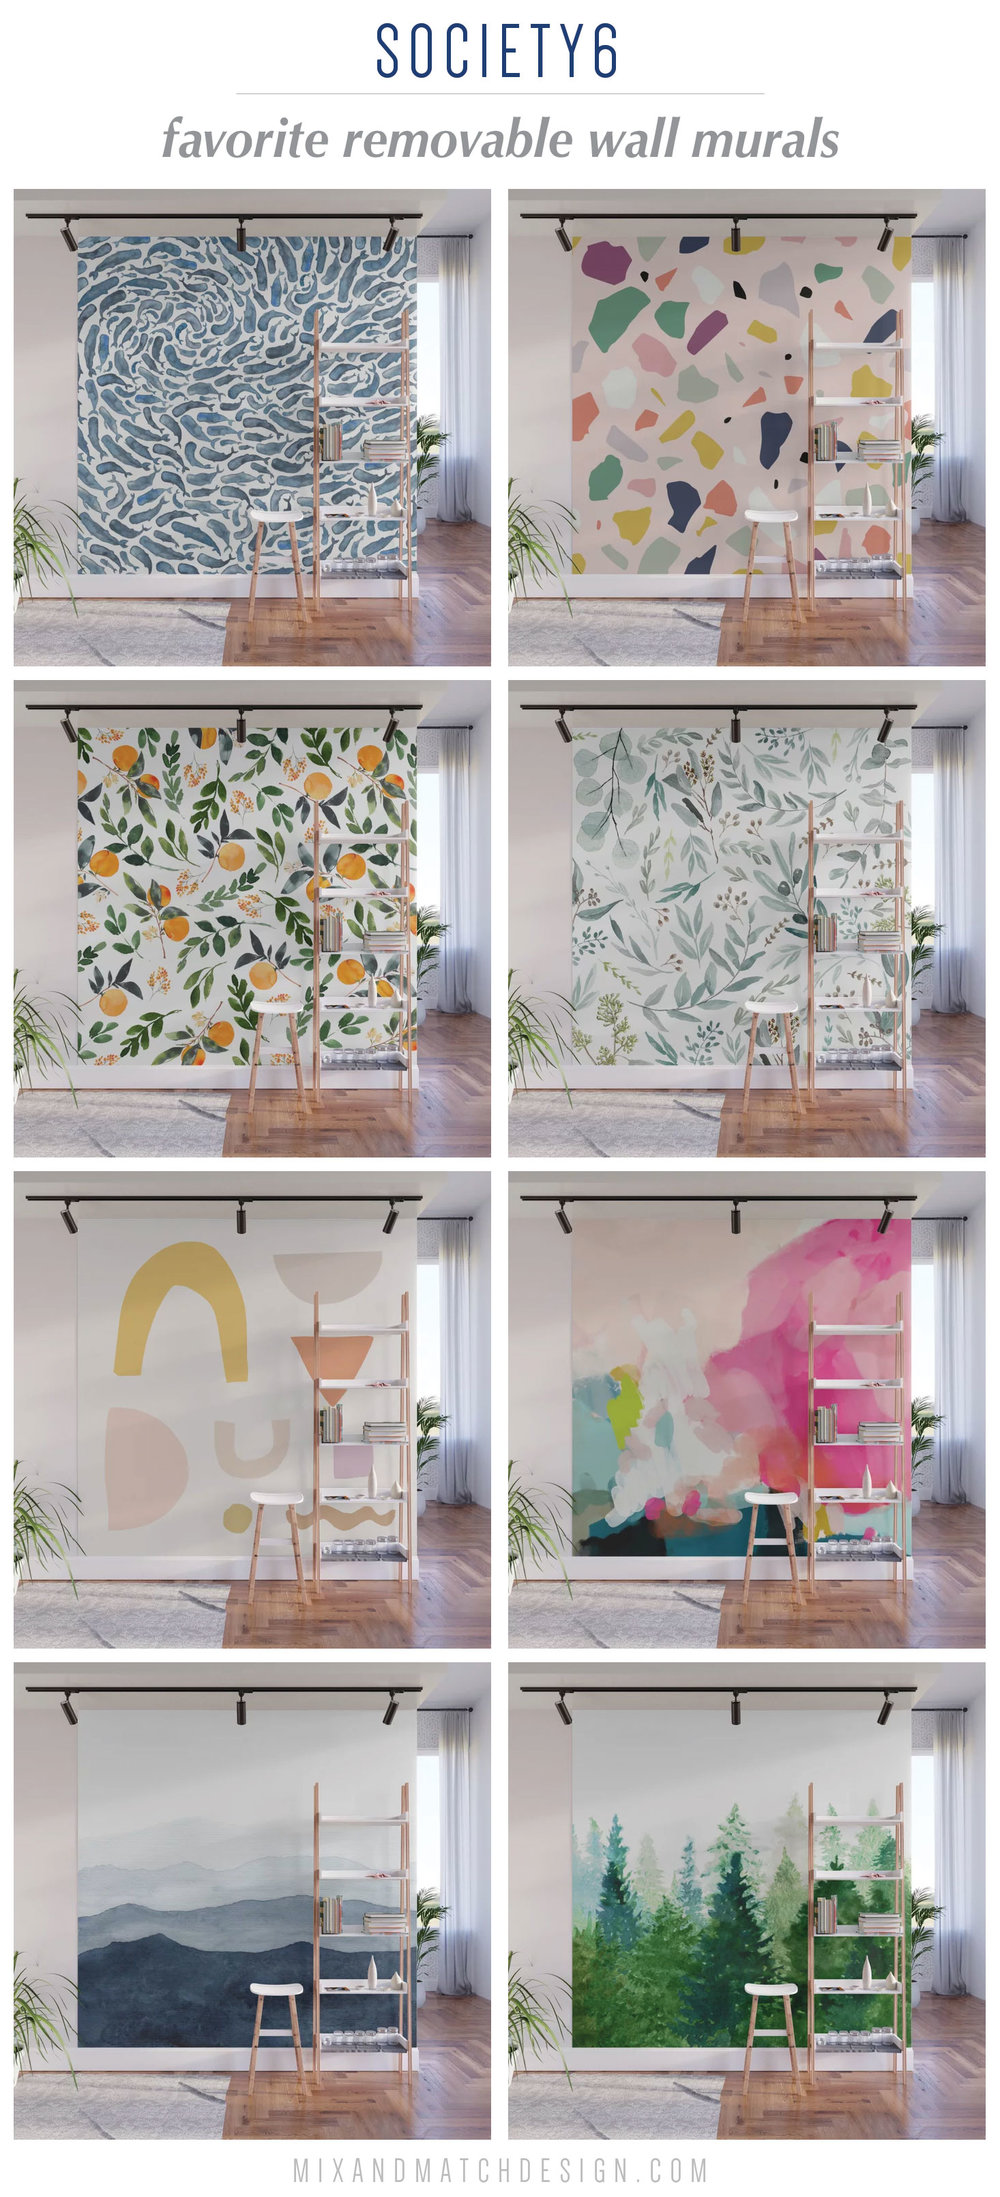 Society6 just launched removable wall murals on their site and I'm loving them! Think of them as oversized pieces of art - use them to make a big statement or as a beautiful backdrop. The fact that they're temporary makes them perfect for a rental or for those of us who have trouble committing to the permanent kind!